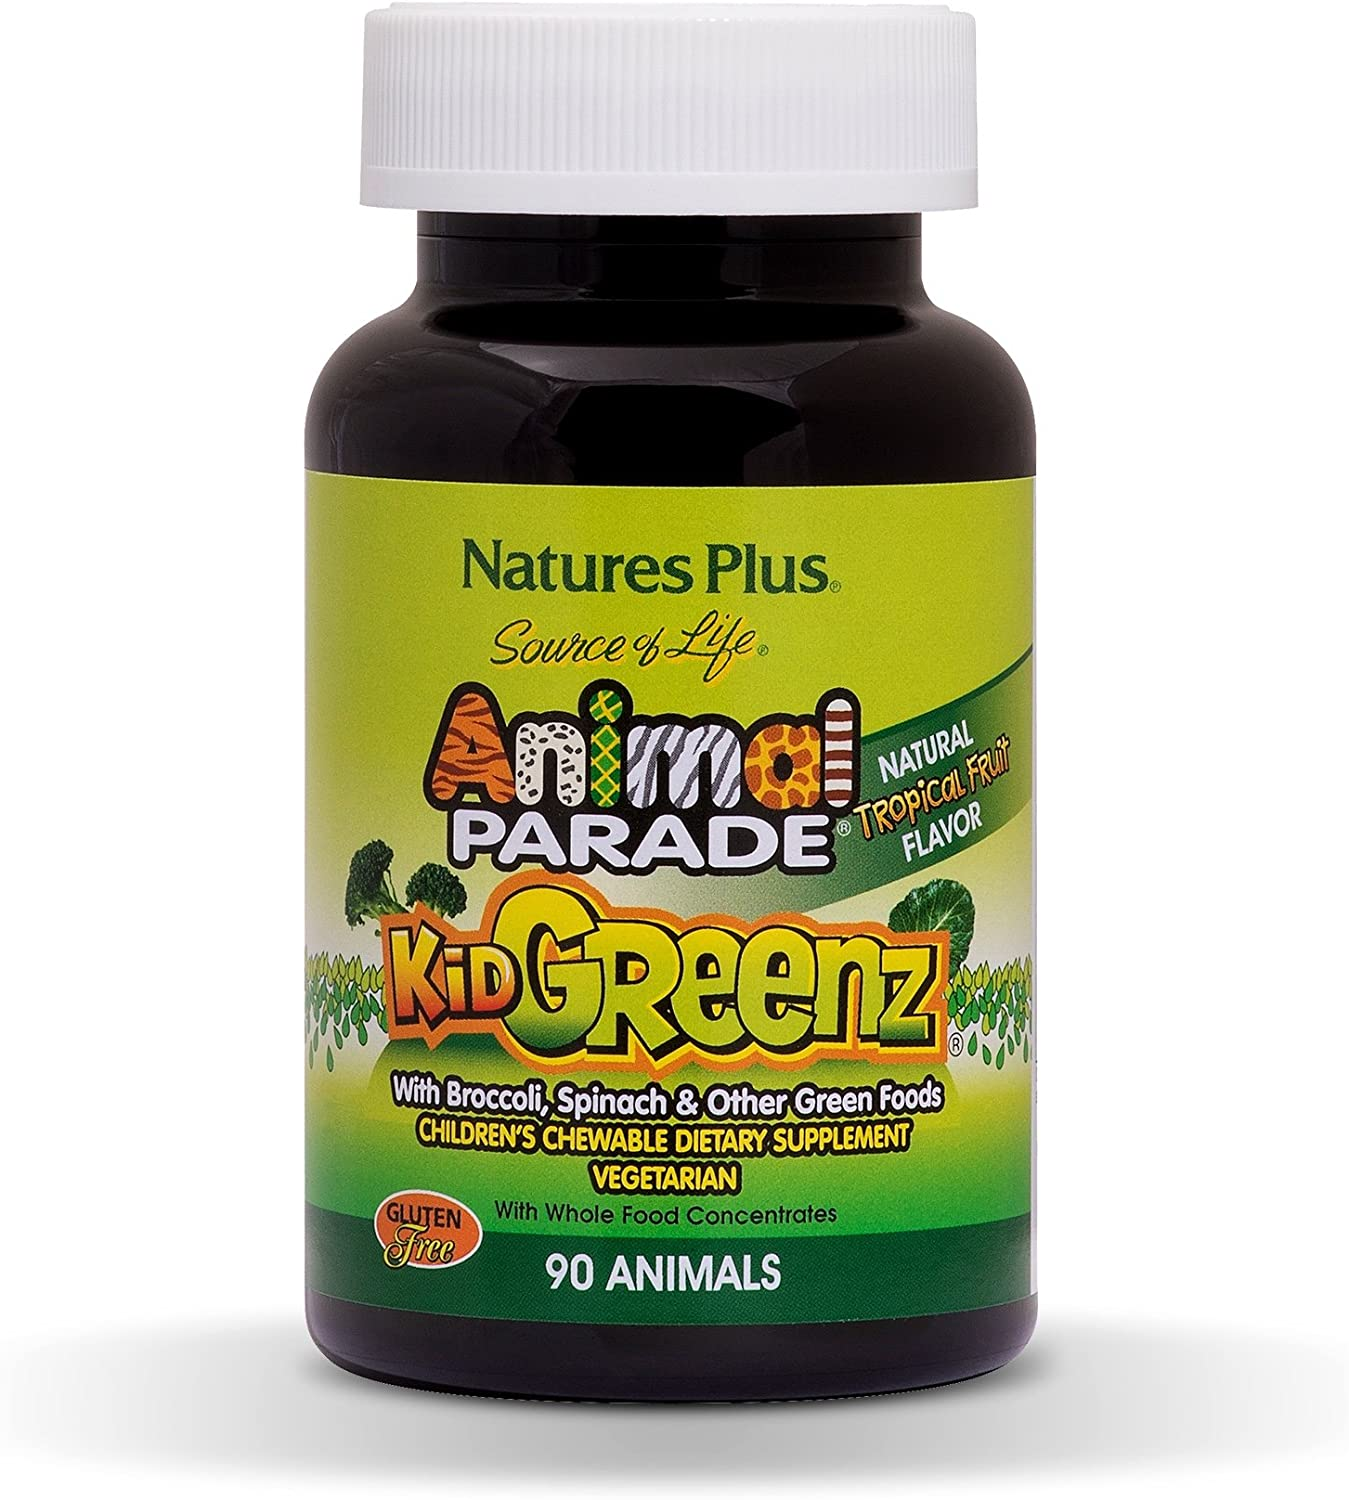 NaturesPlus Animal Parade Source of Life KidGreenz Children s Chewables 2 Pack – Natural Tropical Fruit Flavor – 90 Animal Shaped Tablets – Vegetarian, Gluten-Free – 180 Total Servings